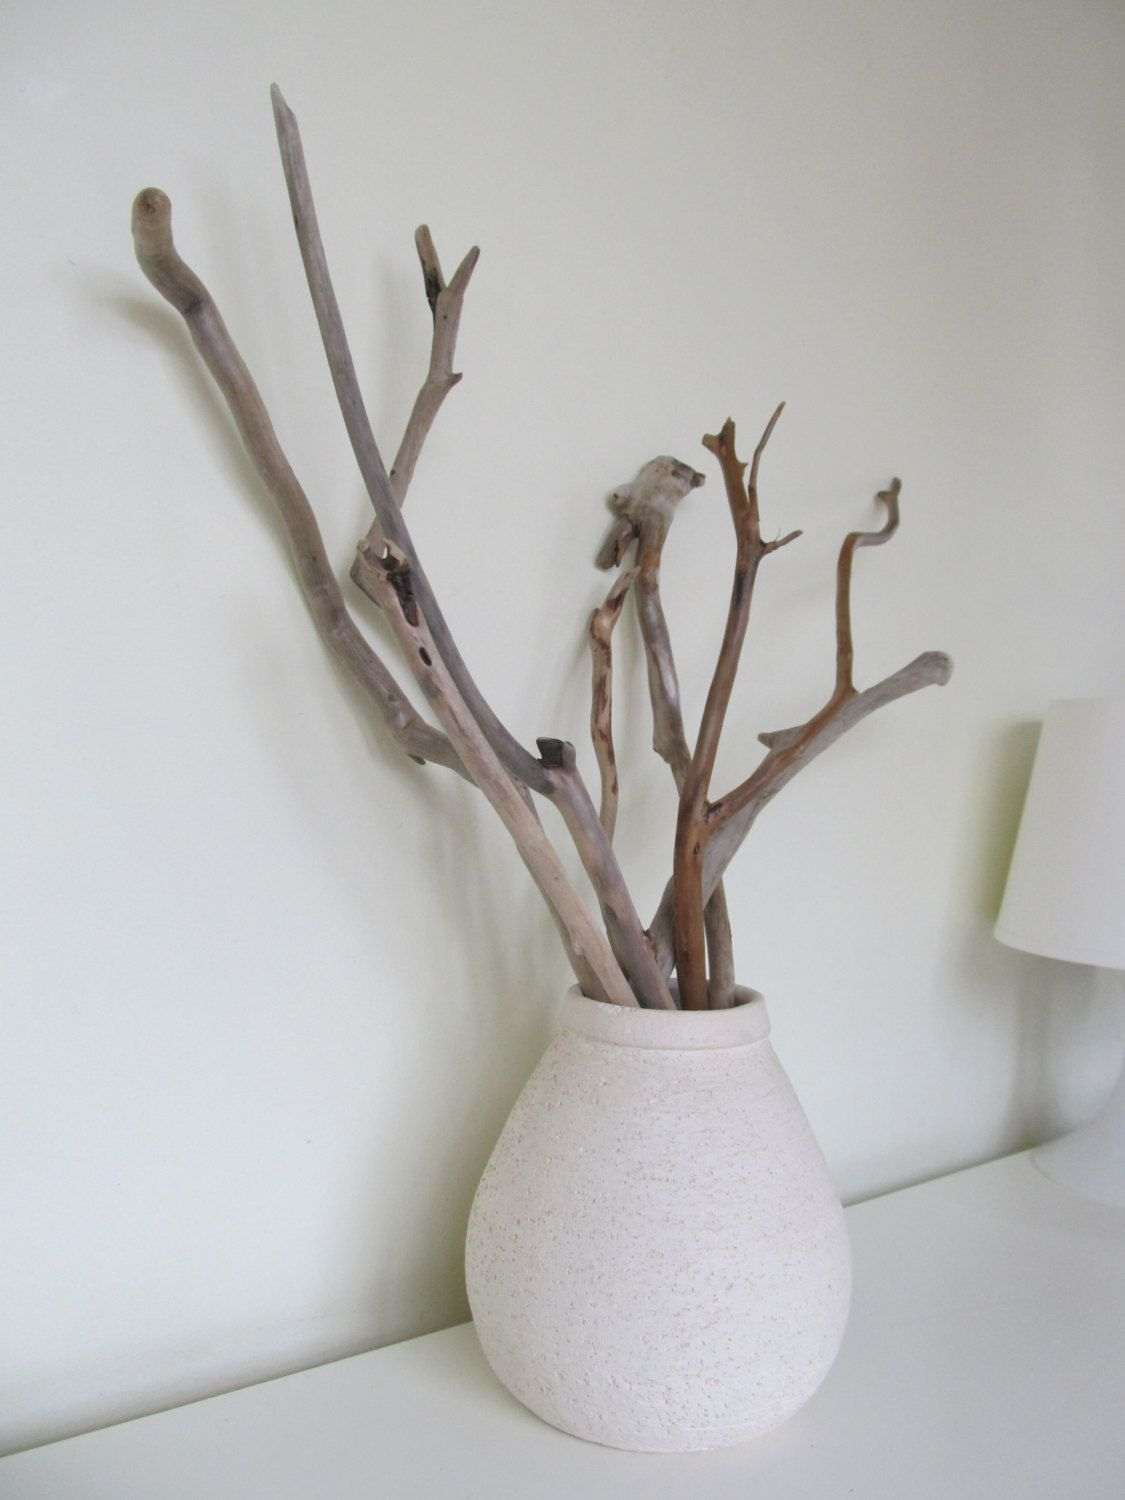 Smooth driftwood twigs vase filler odd shaped driftwood branches smooth driftwood twigs 14 19 long odd shaped driftwood branches vase filler reviewsmspy